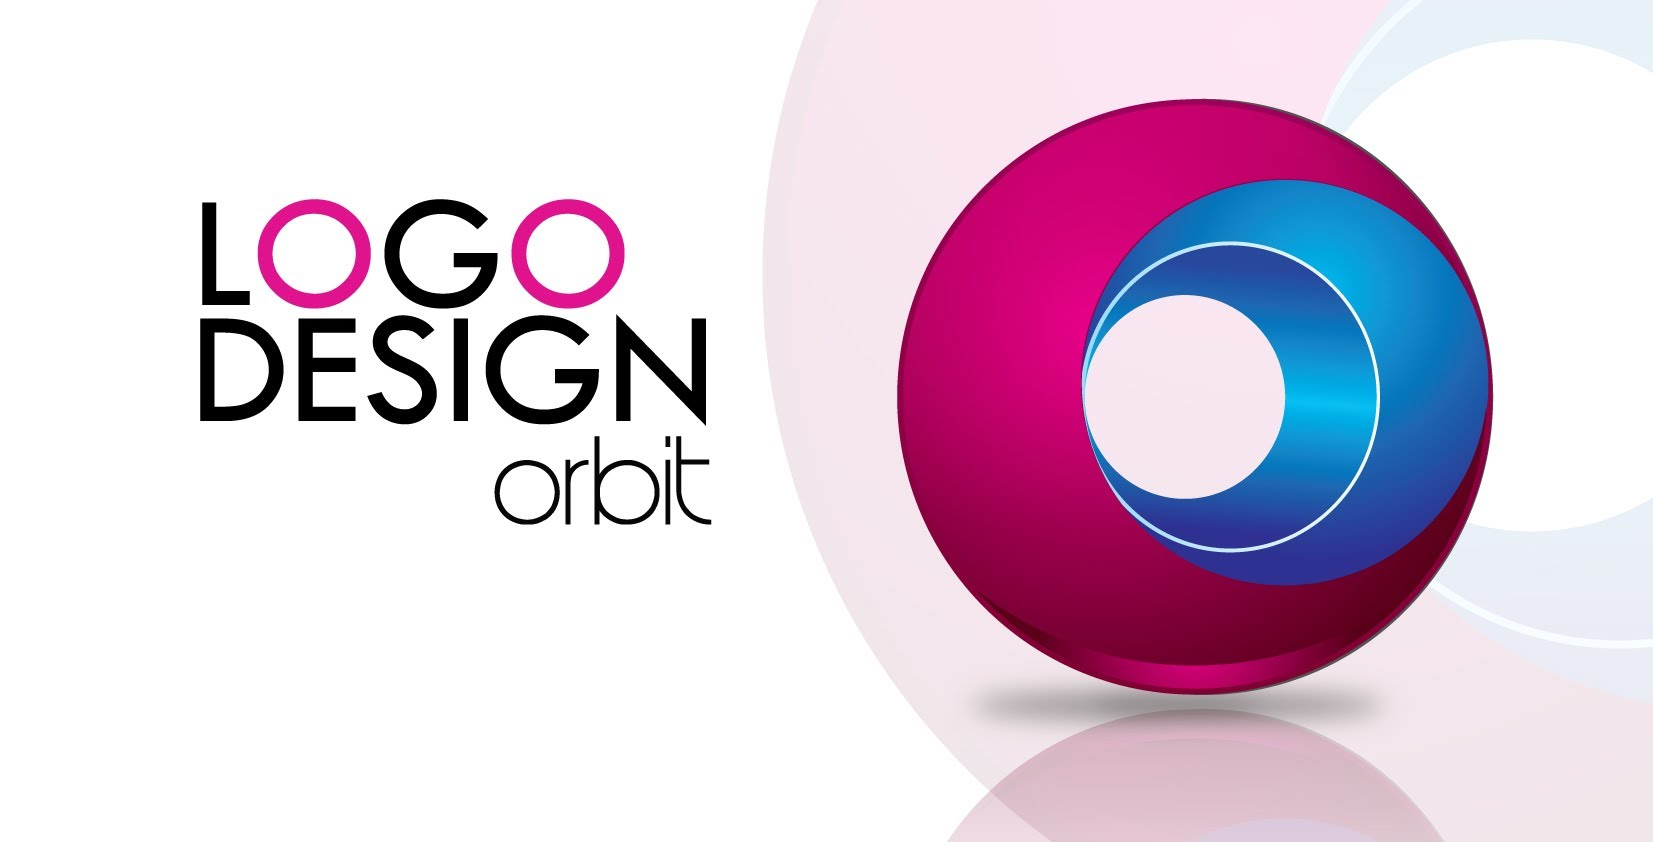 Logo Design photo - 1